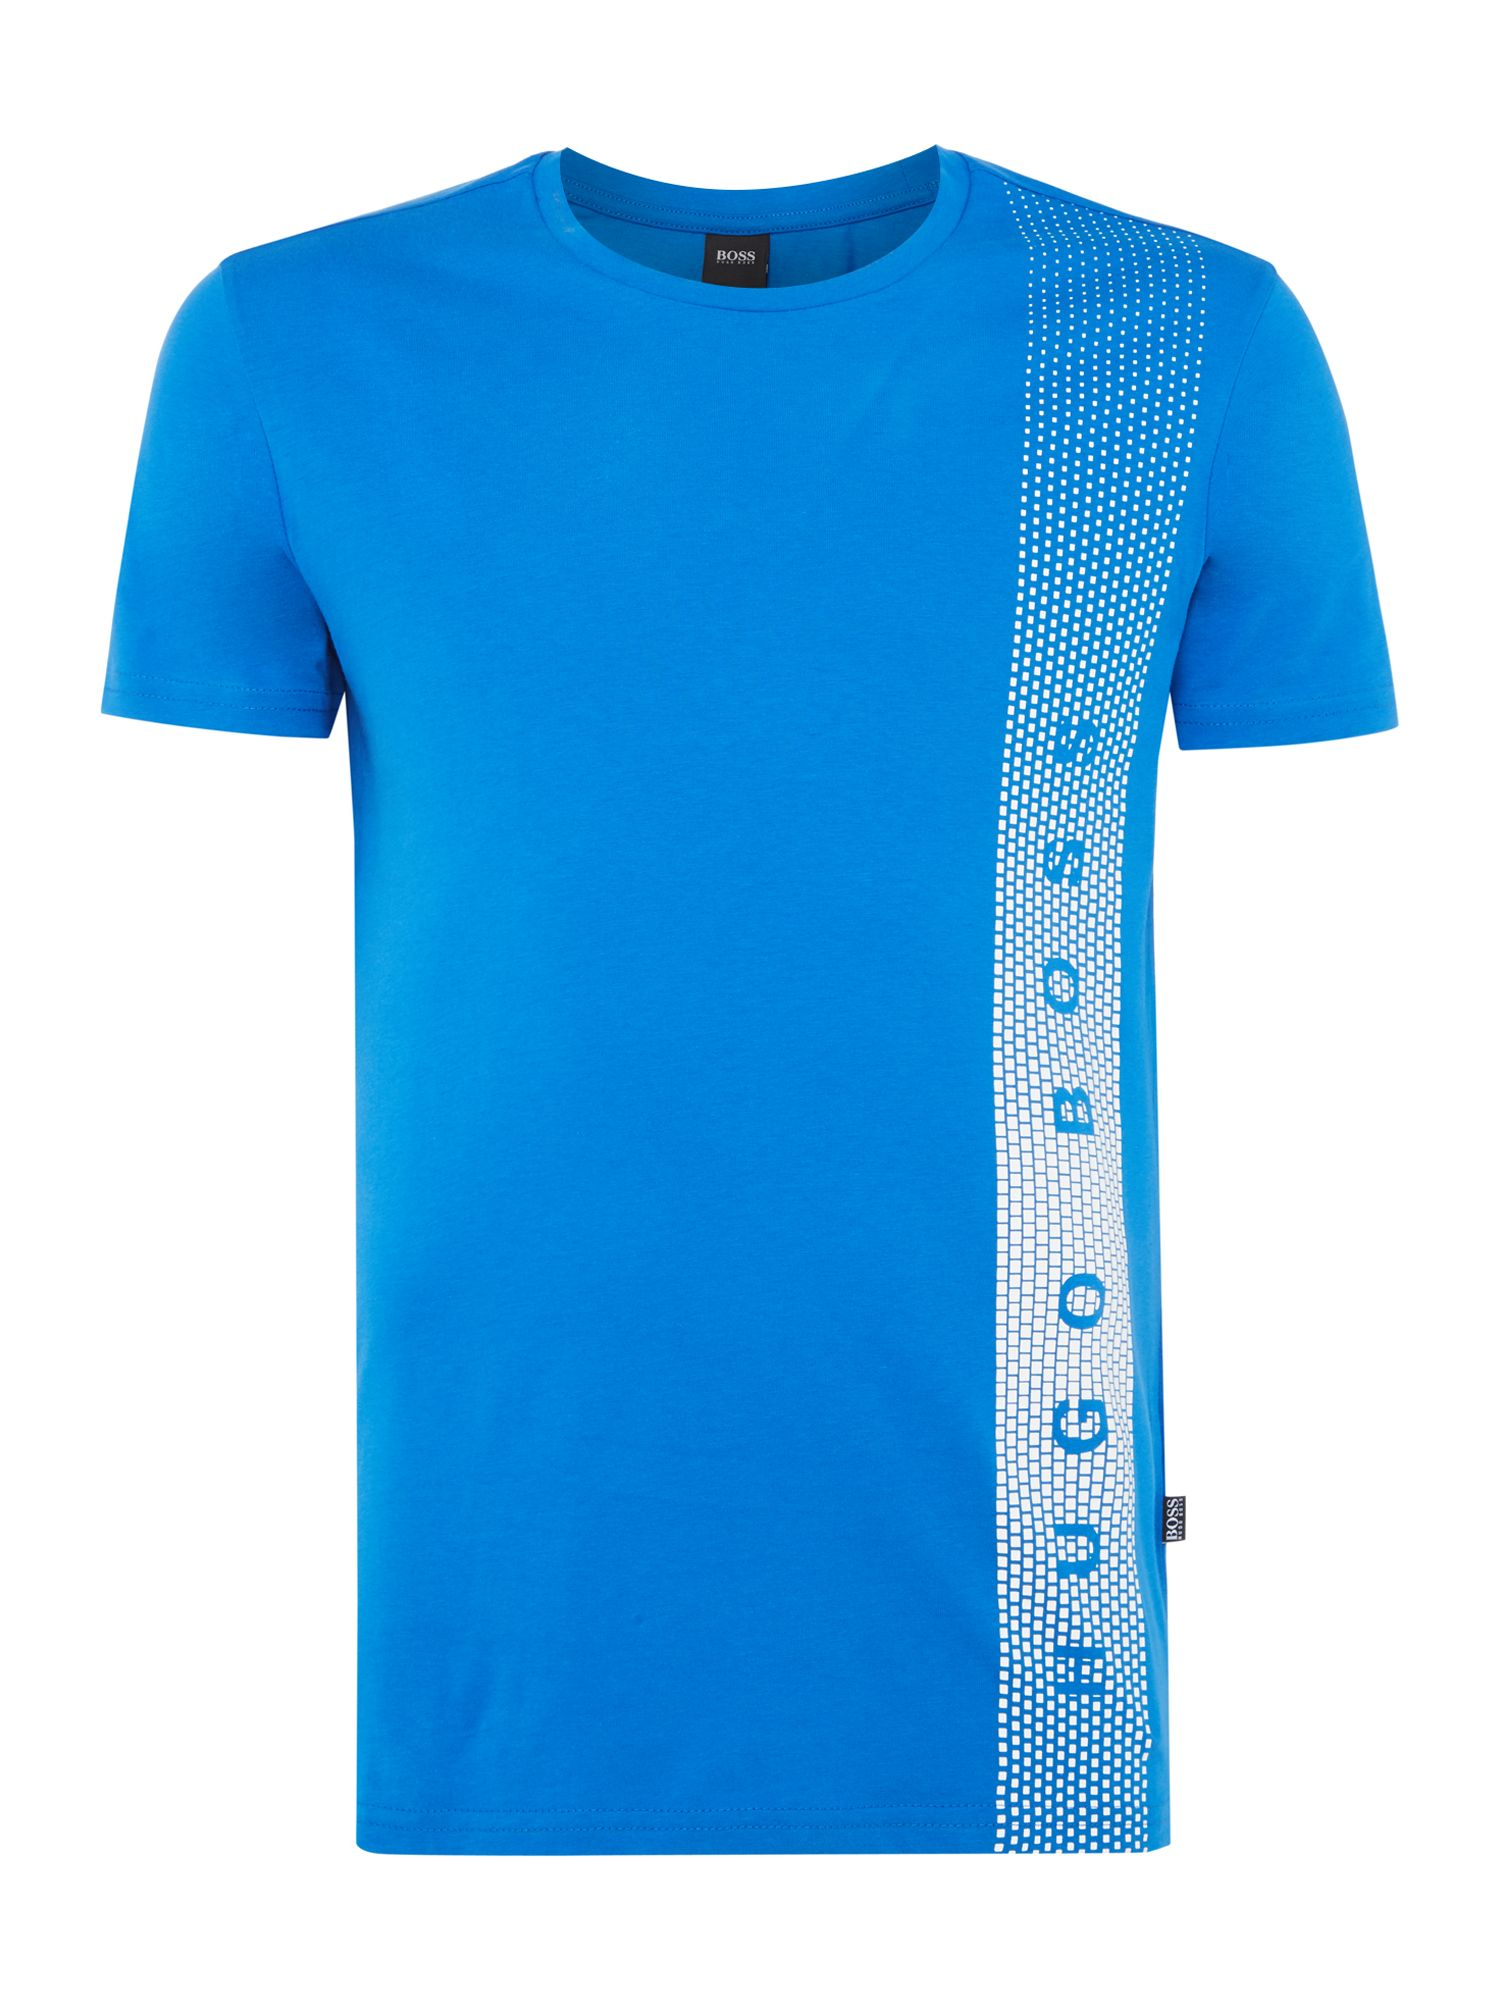 Men's Hugo Boss Logo Tee, Blue